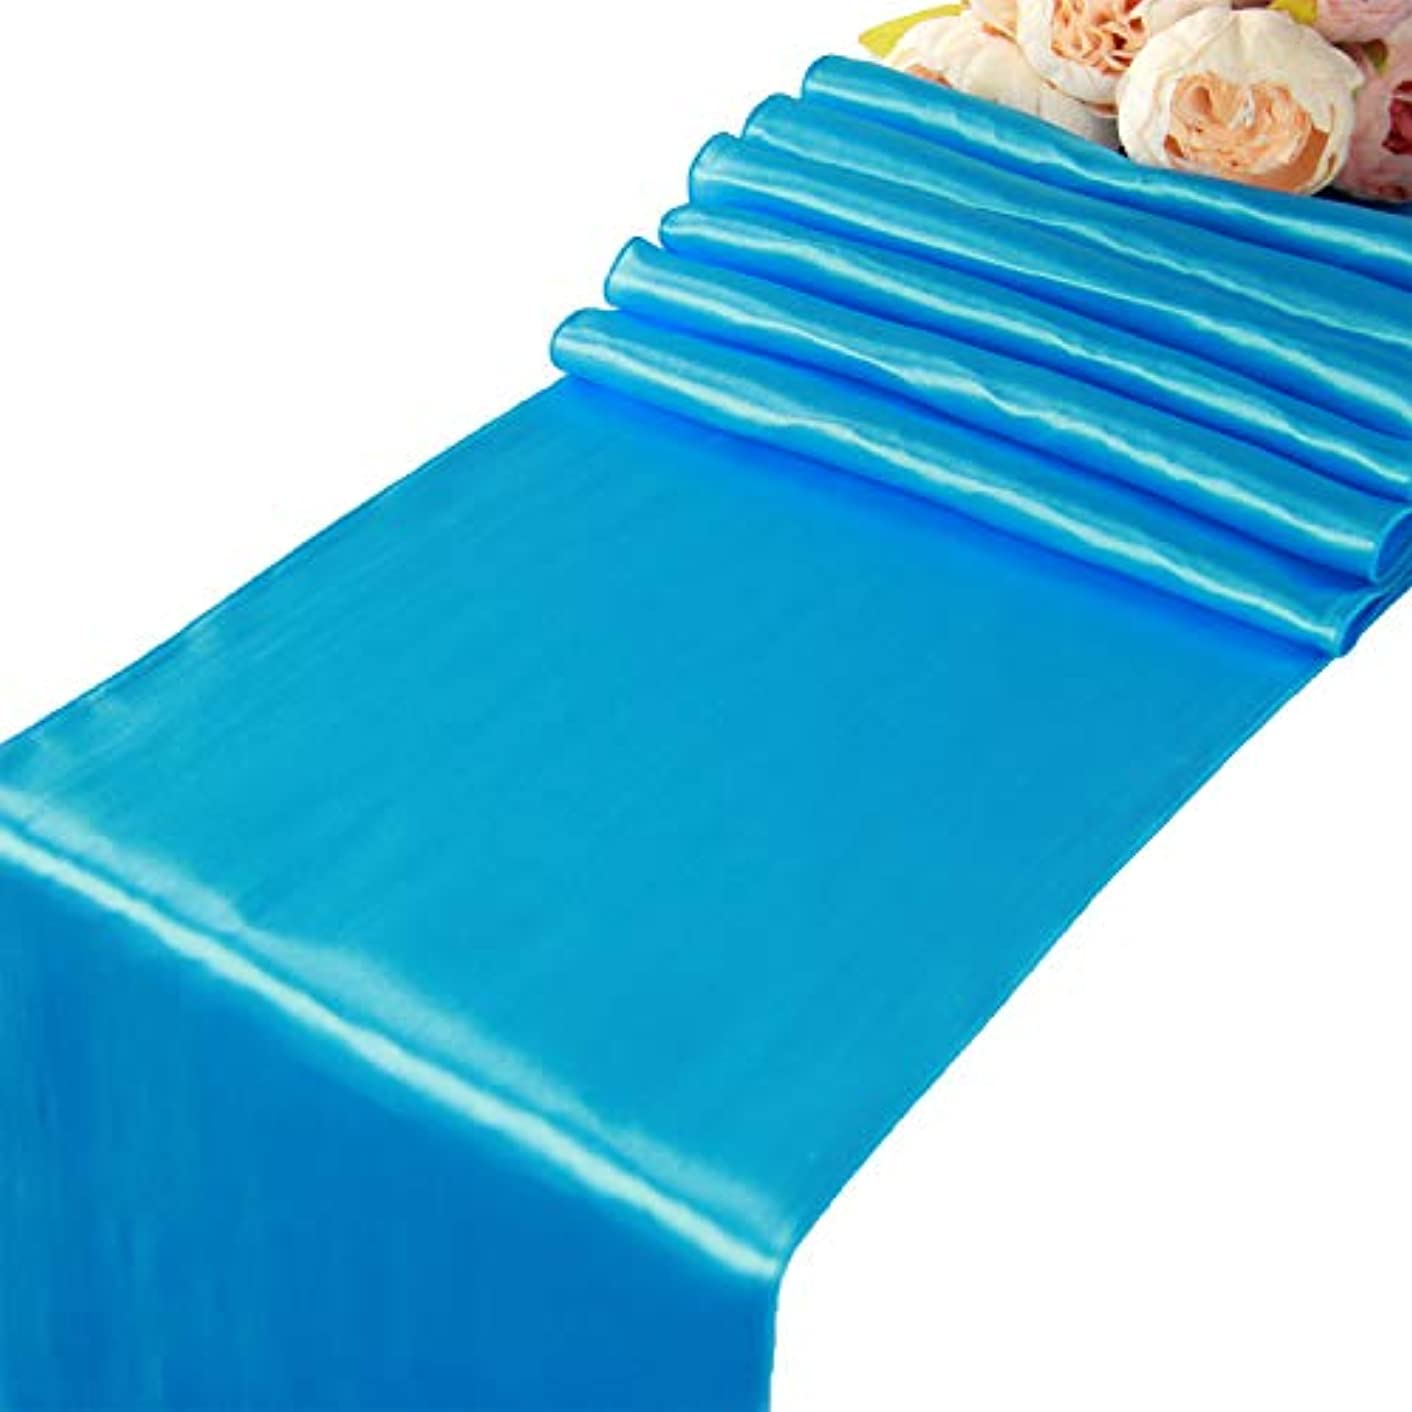 Turquoise Satin Table Runners - 10 pcs Wedding Banquet Party Event Decoration Table Runners (Turquoise, 10)